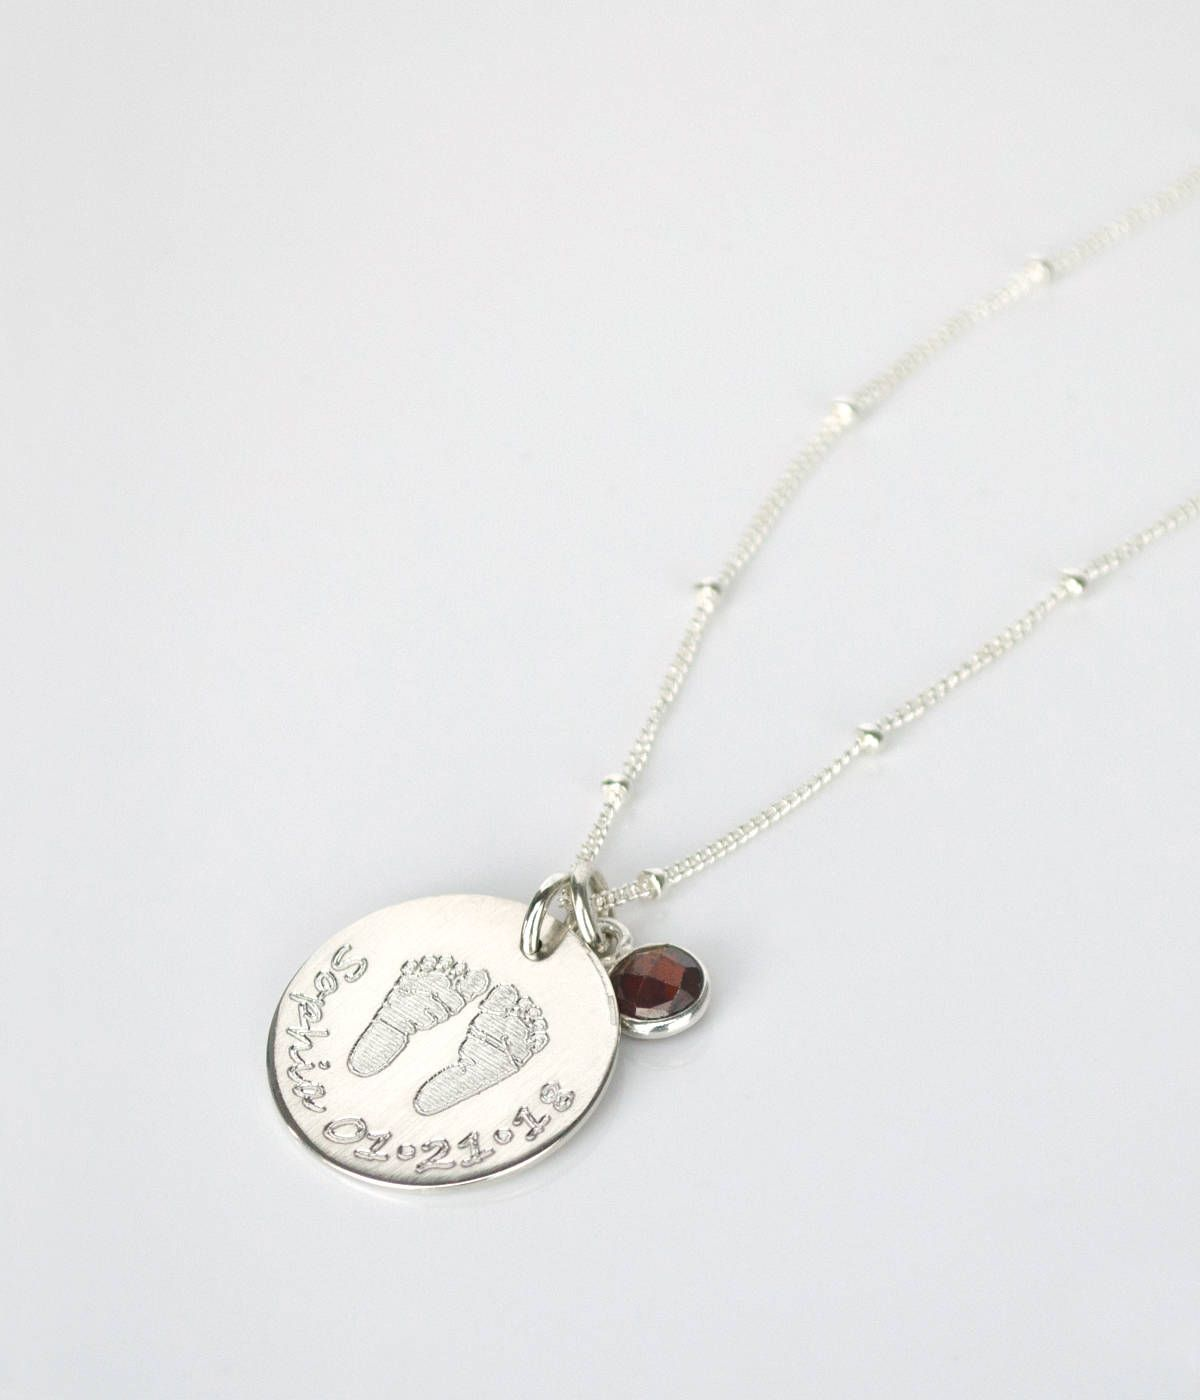 silver jewelry hammered accents circle mothers with mother child and necklace jewellery birthstone